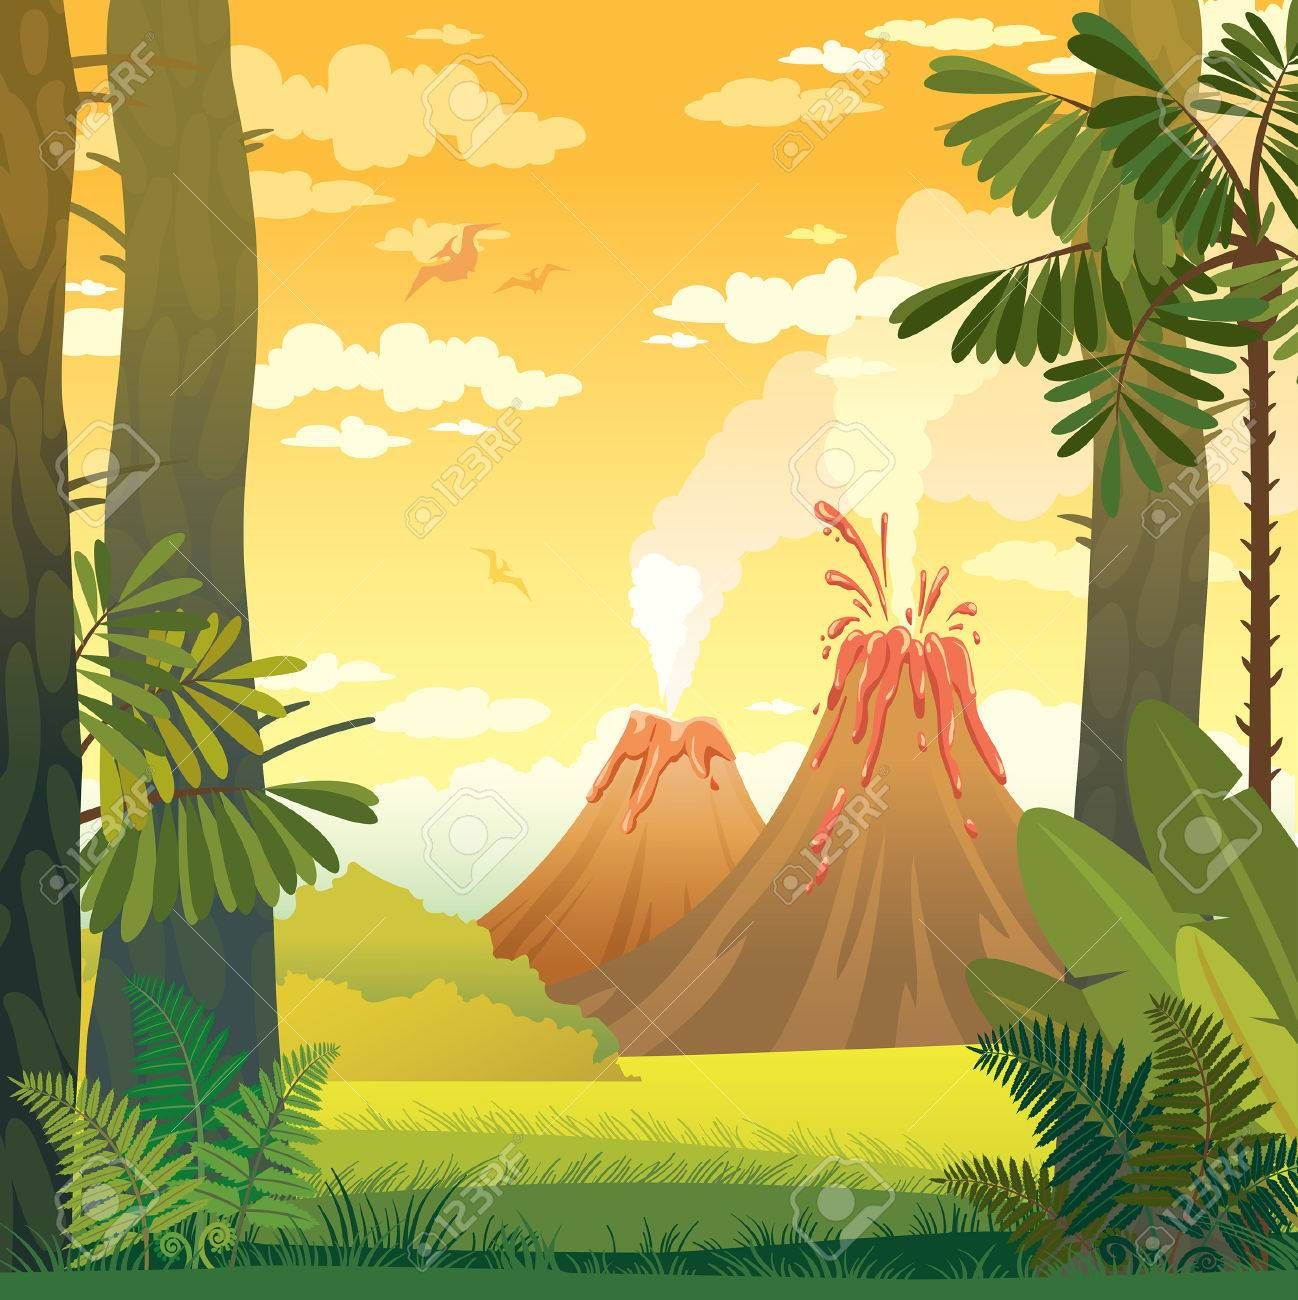 Natural Prehistoric Vector Illustration Wild Landscape With